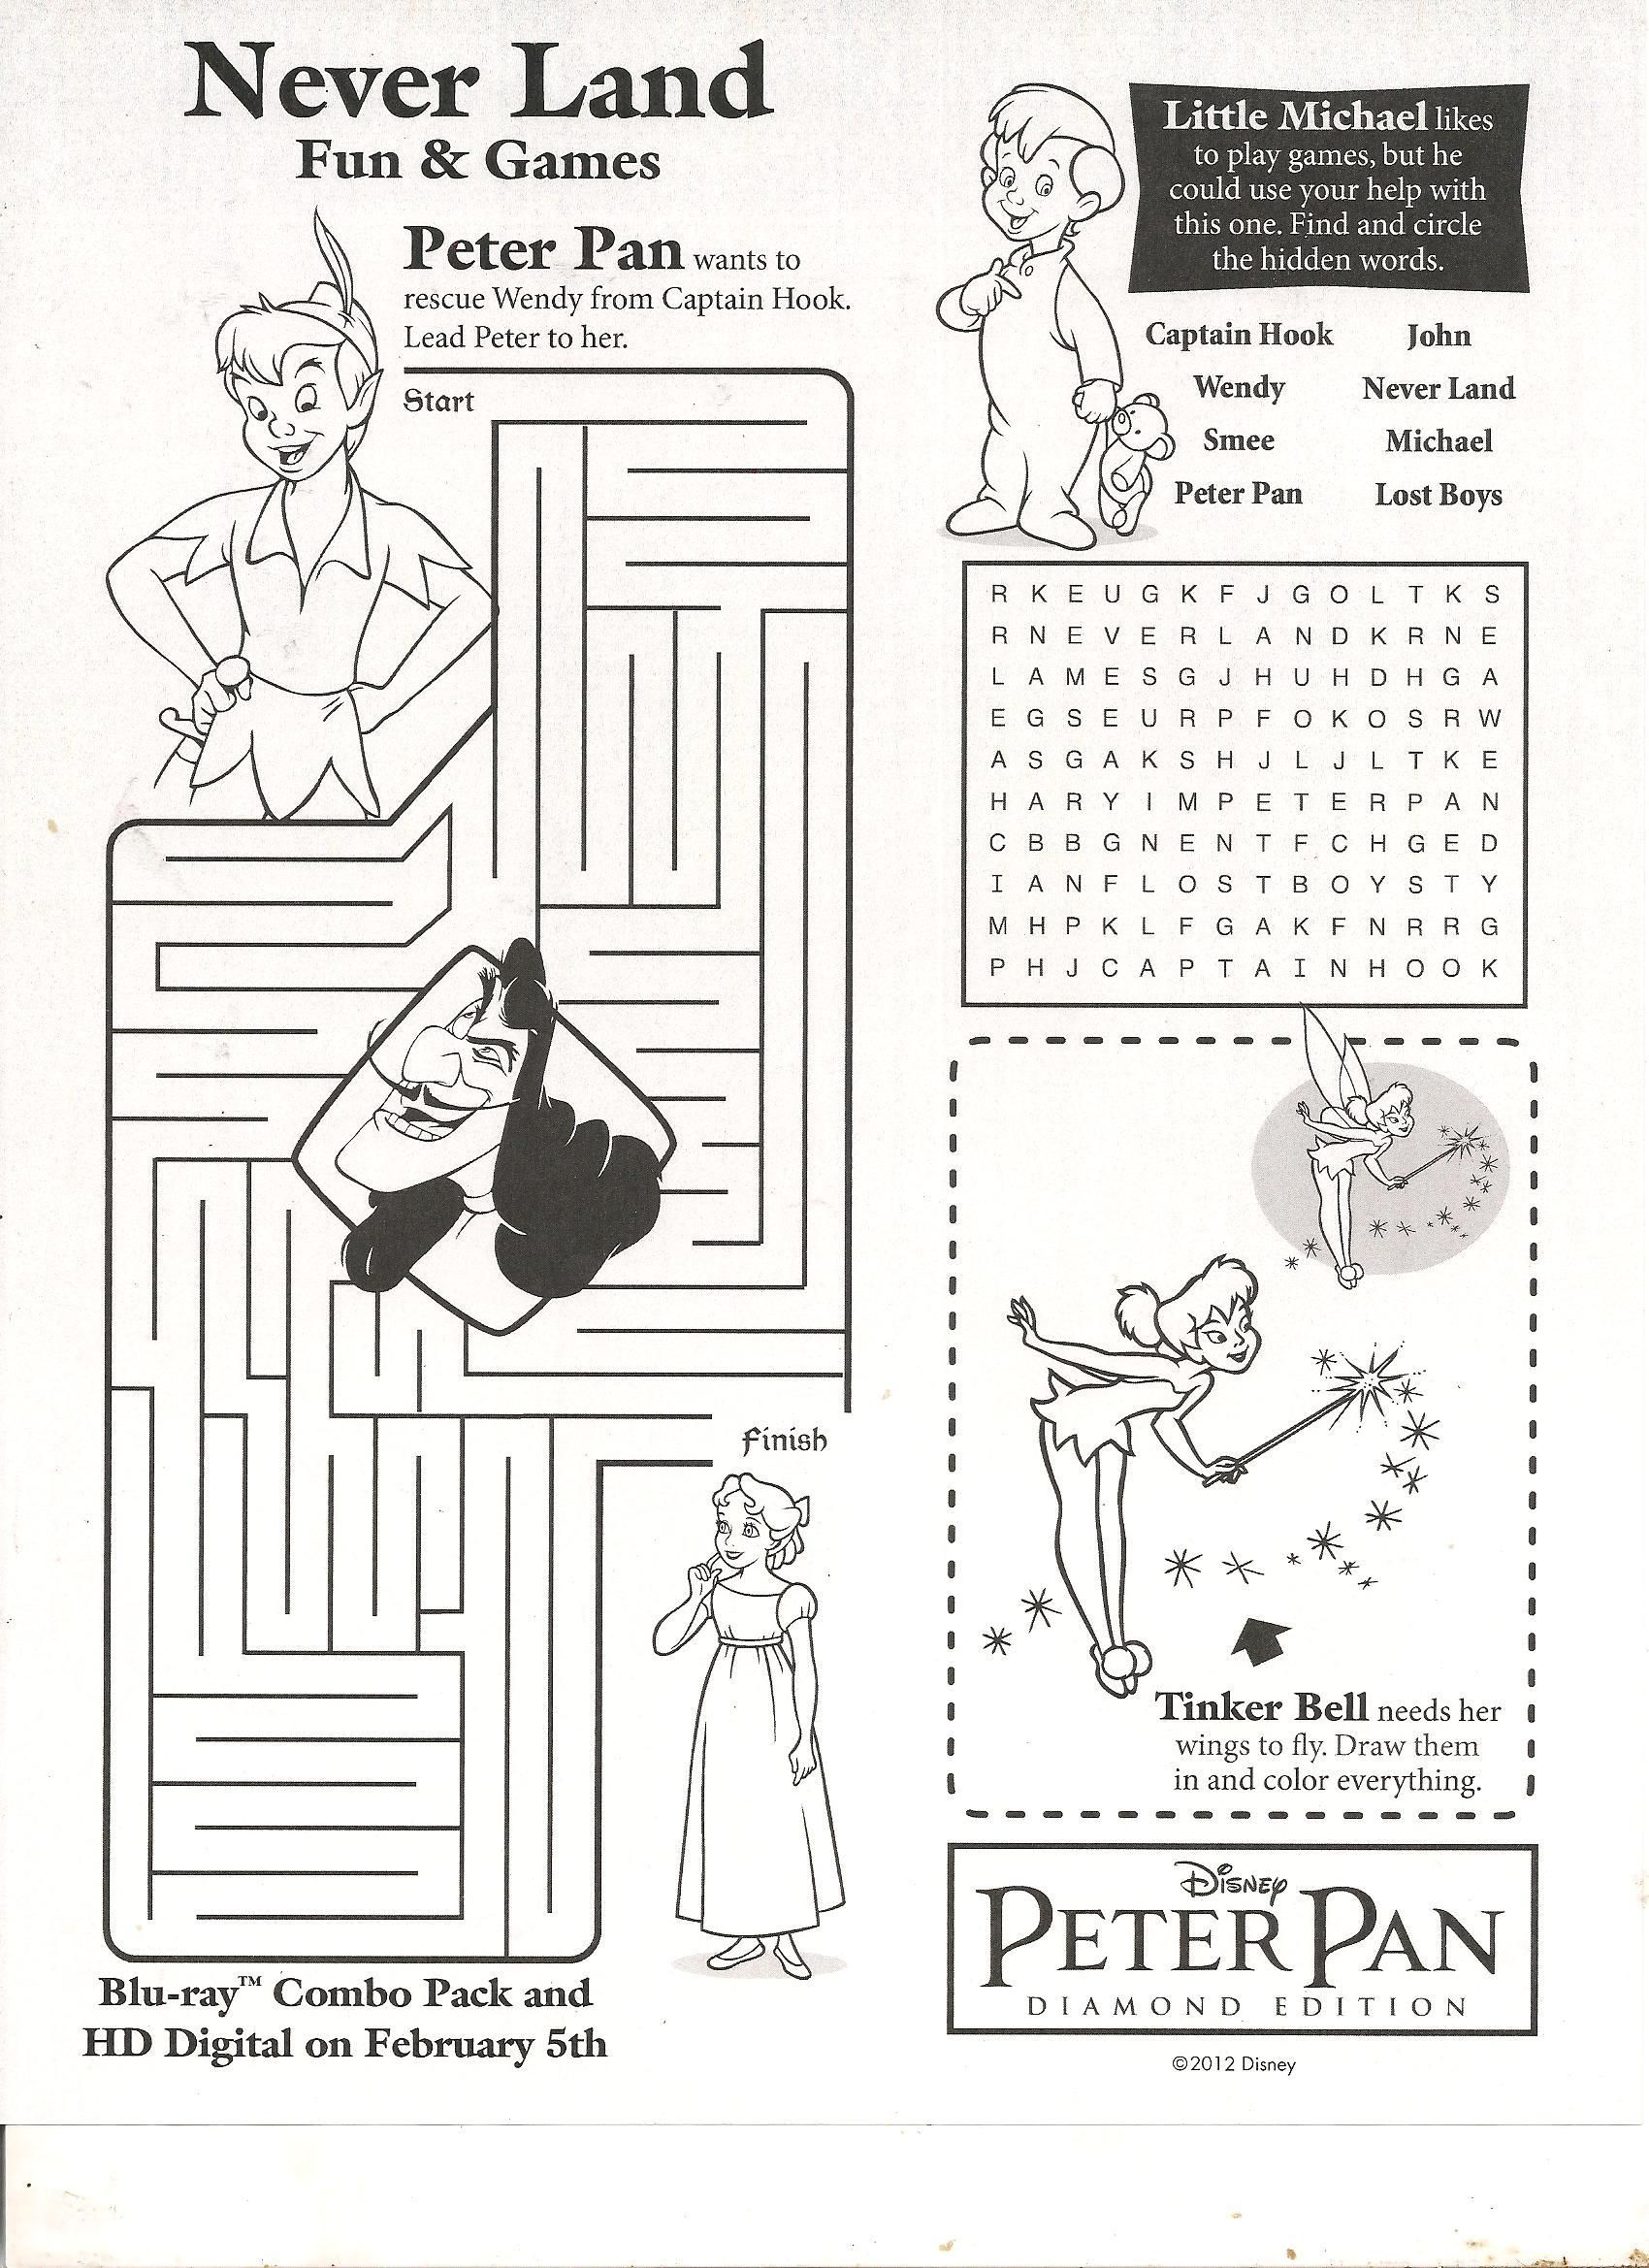 Peter Pan fun and games activity